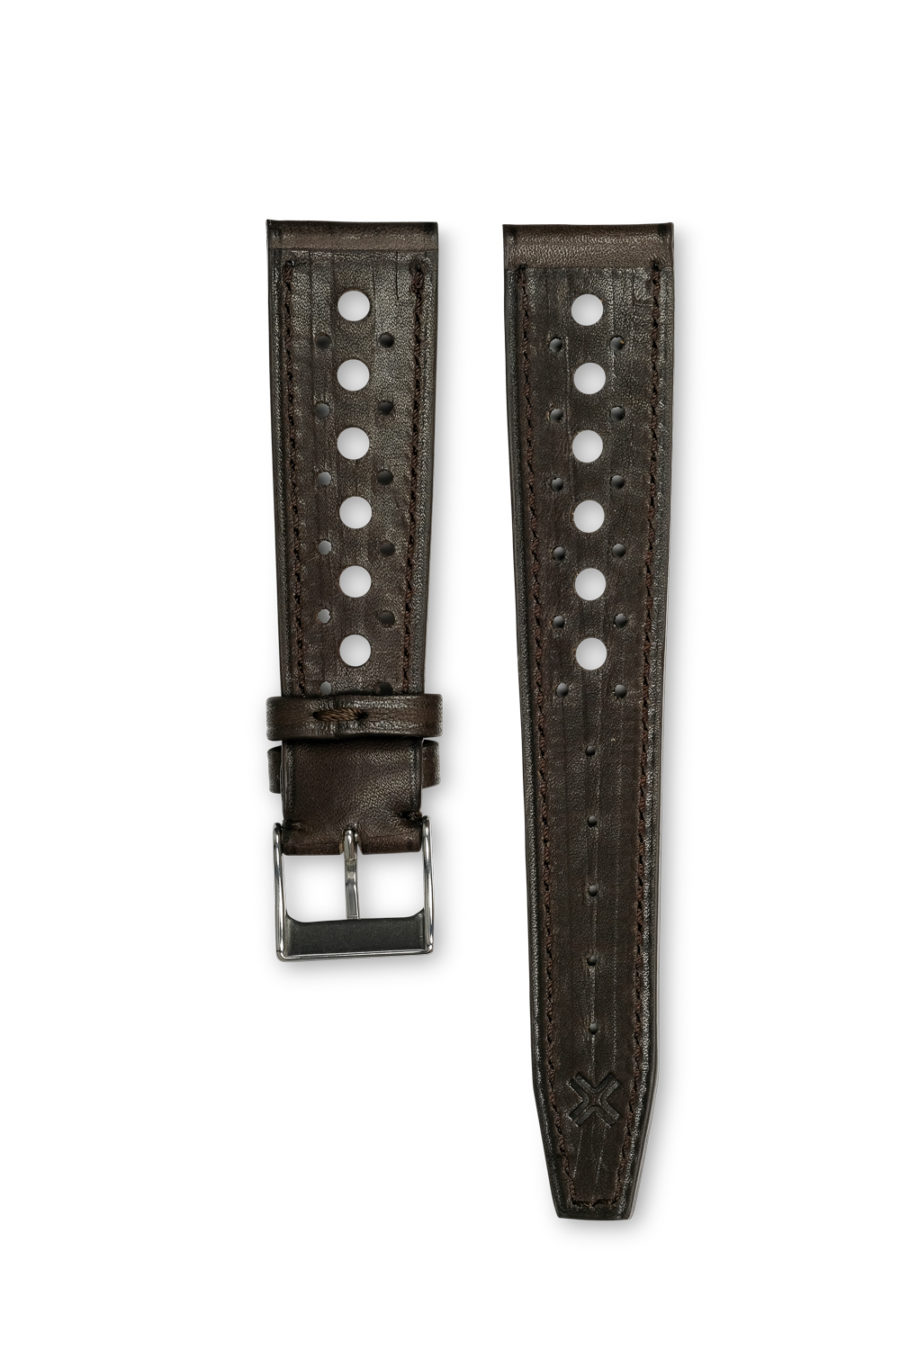 Smooth Rally chocolate brown leather watch strap - tone on tone stitching - LUGS brand